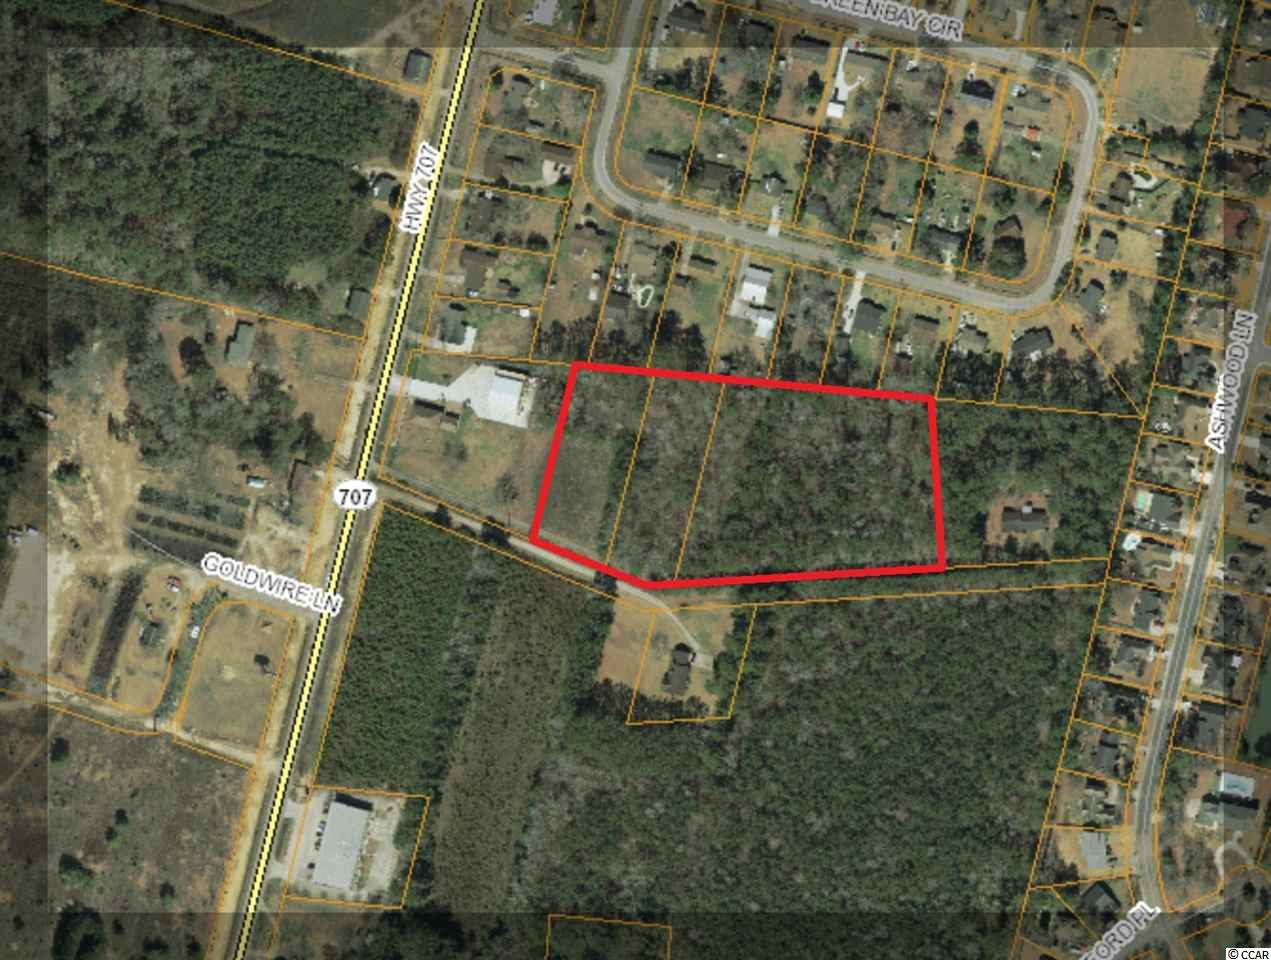 Land for Sale at TBD Highway 707 TBD Highway 707 Myrtle Beach, South Carolina 29588 United States